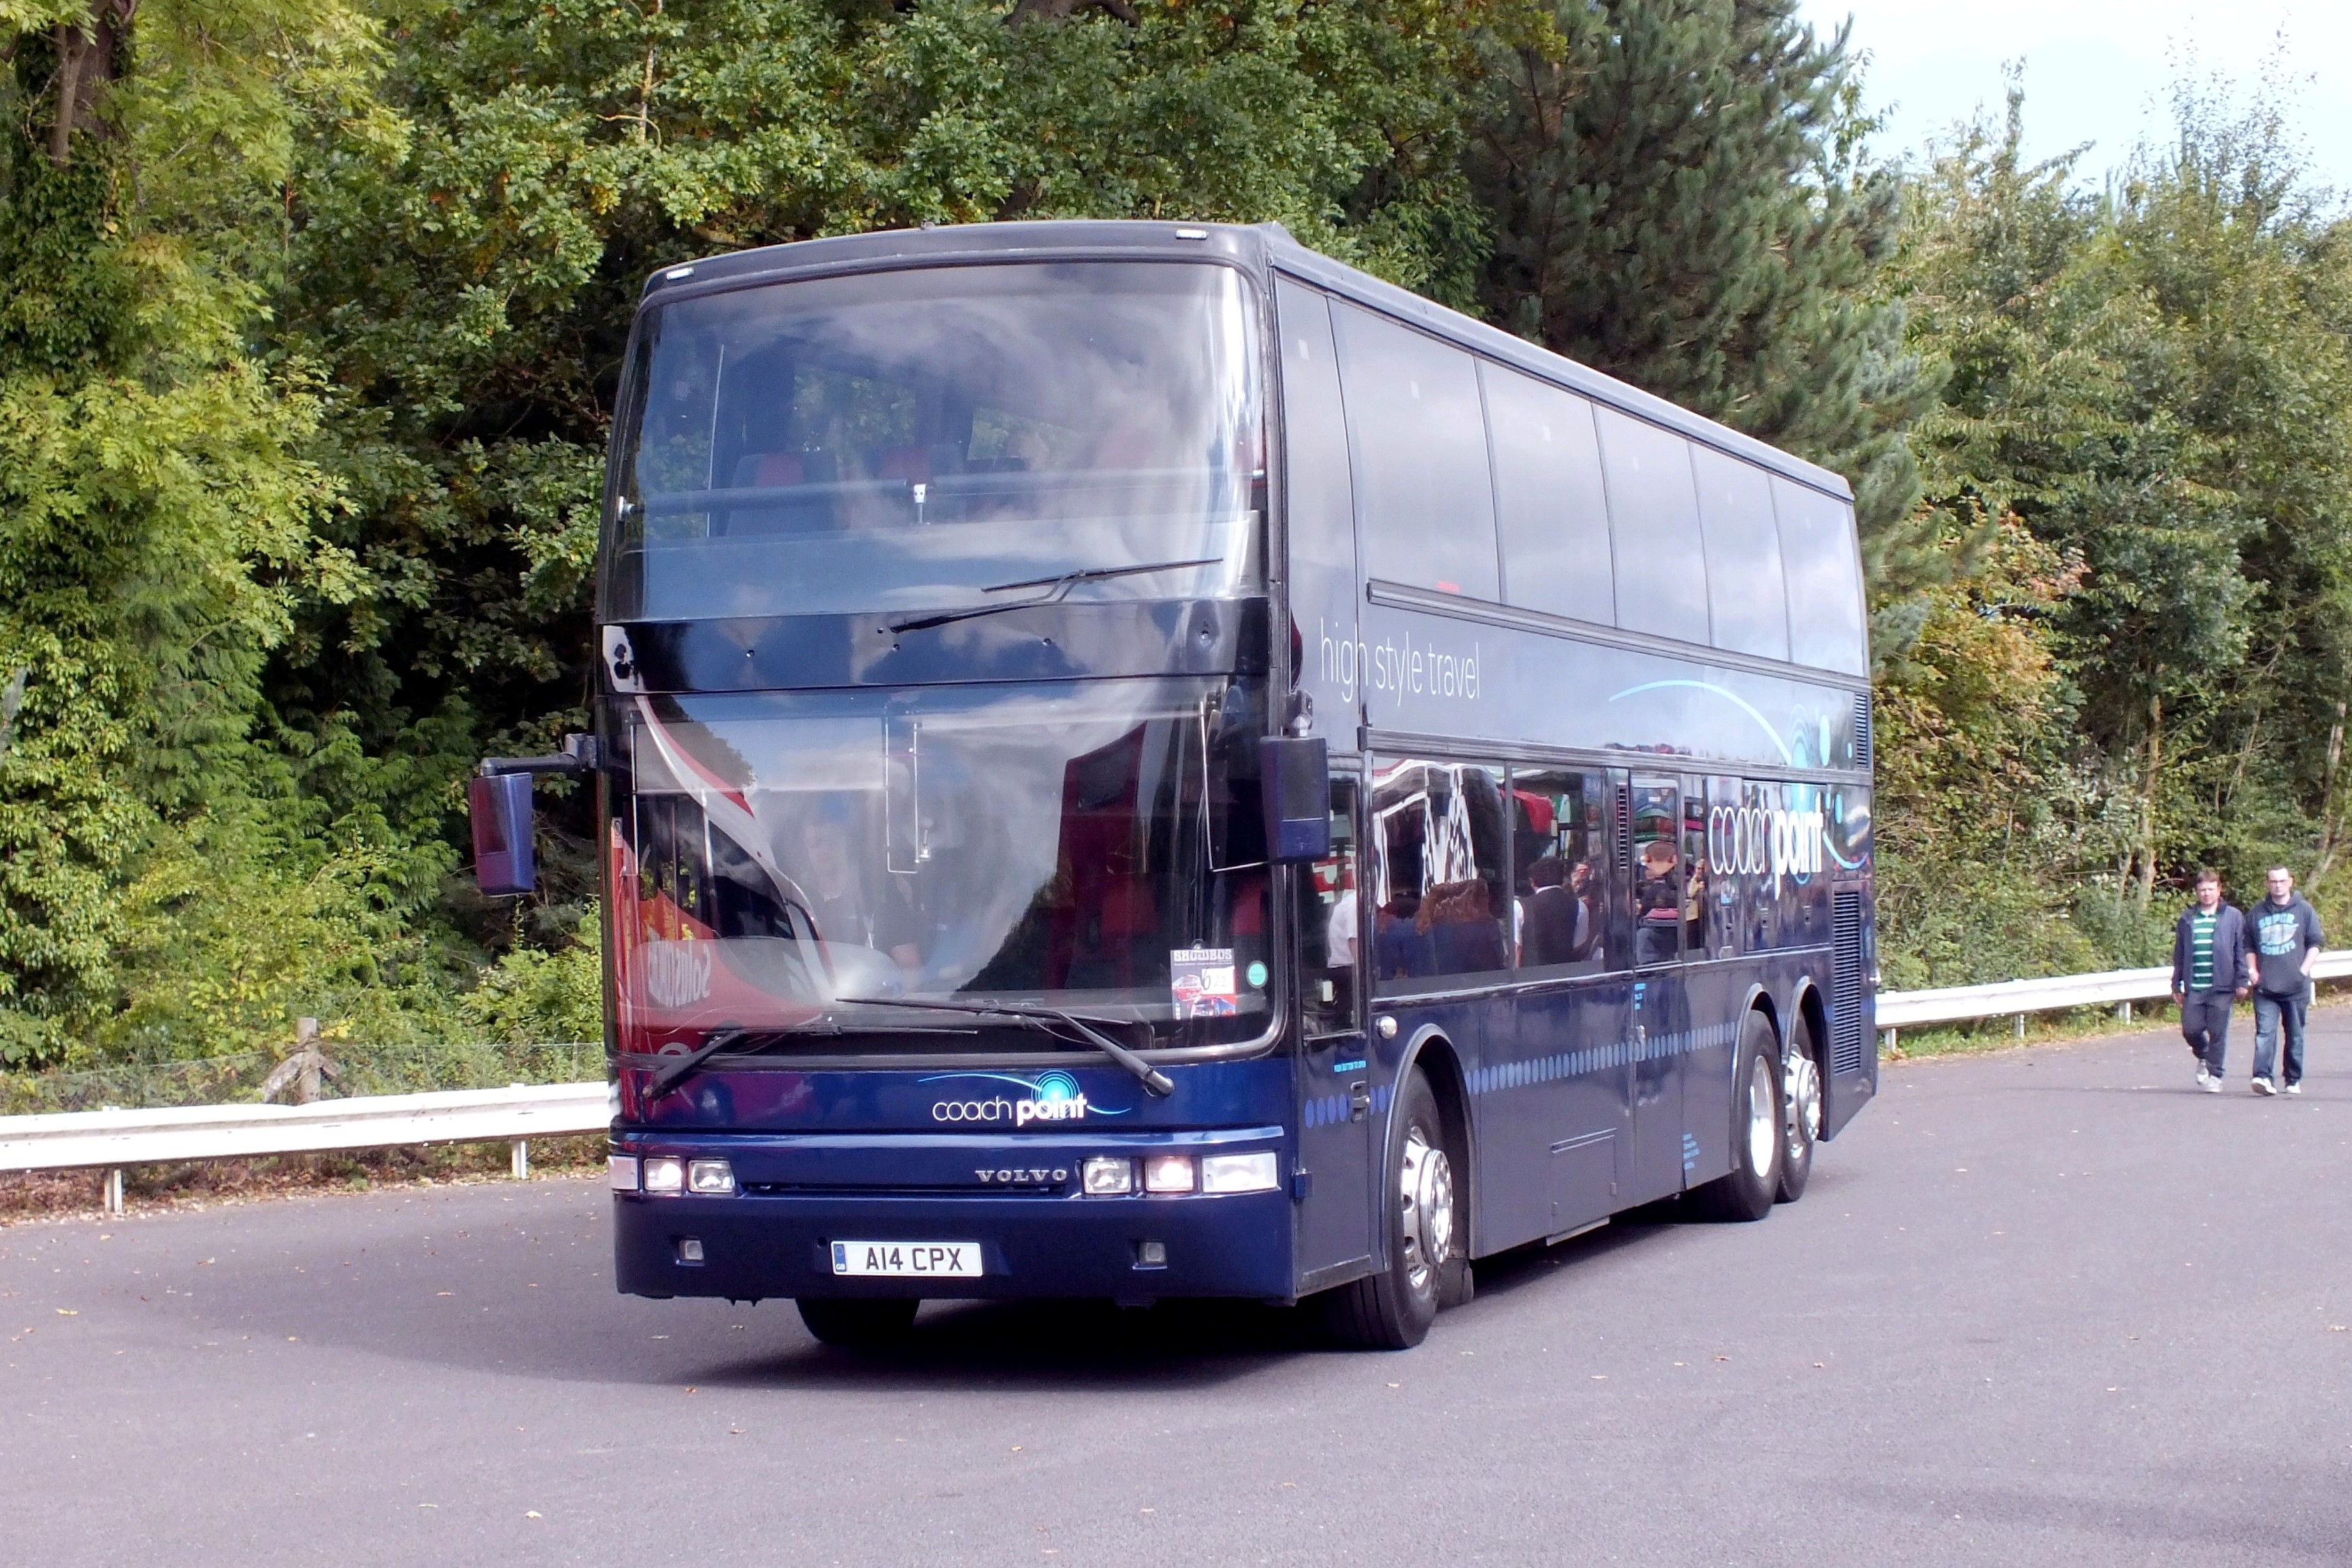 17 September 2017 Showbus, Donington. 432.jpg